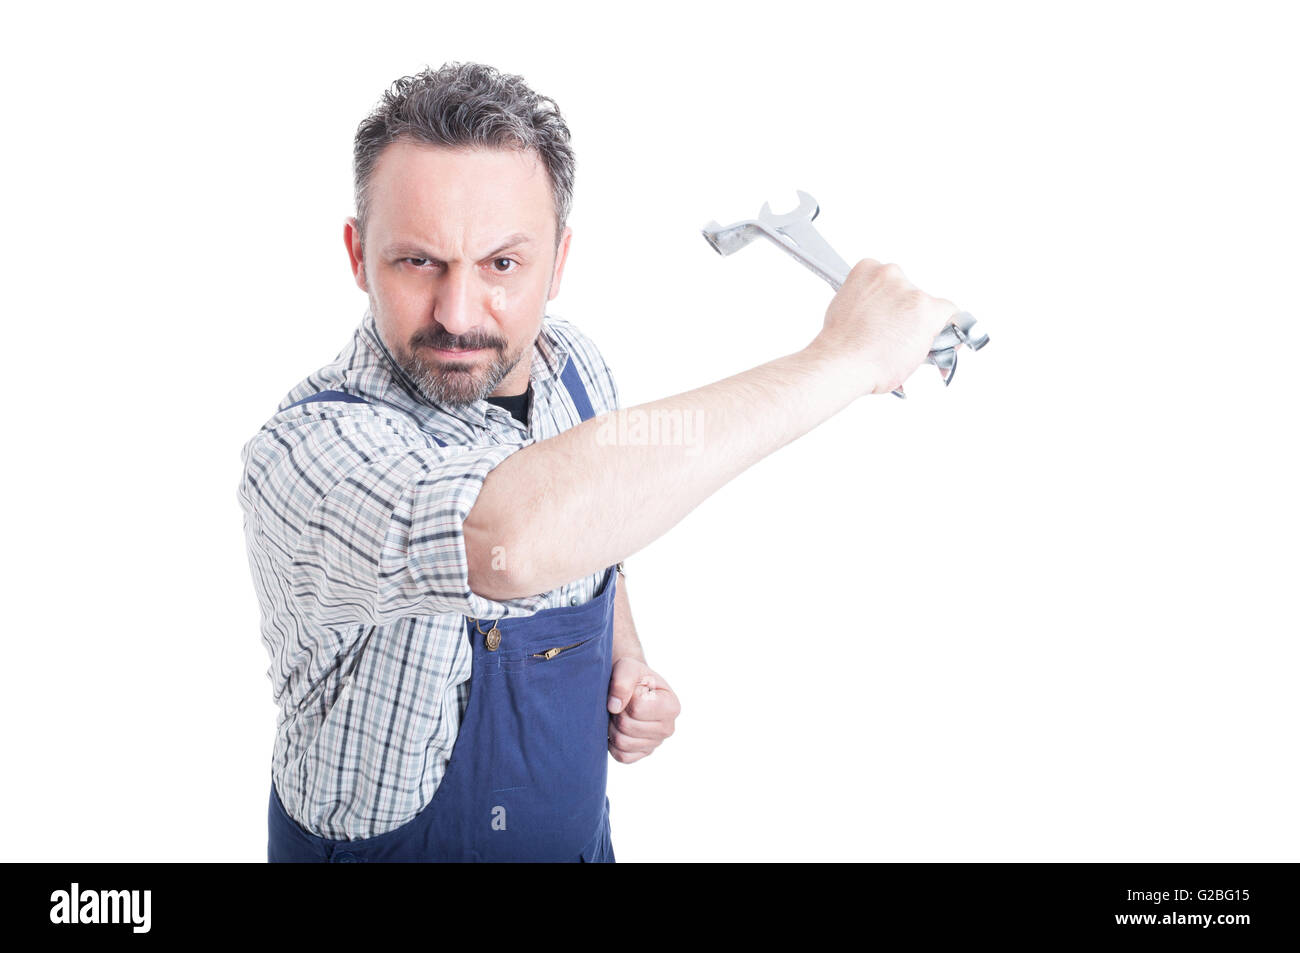 Angry mechanic in workwear acting violent with a steel wrench isolated on white background - Stock Image